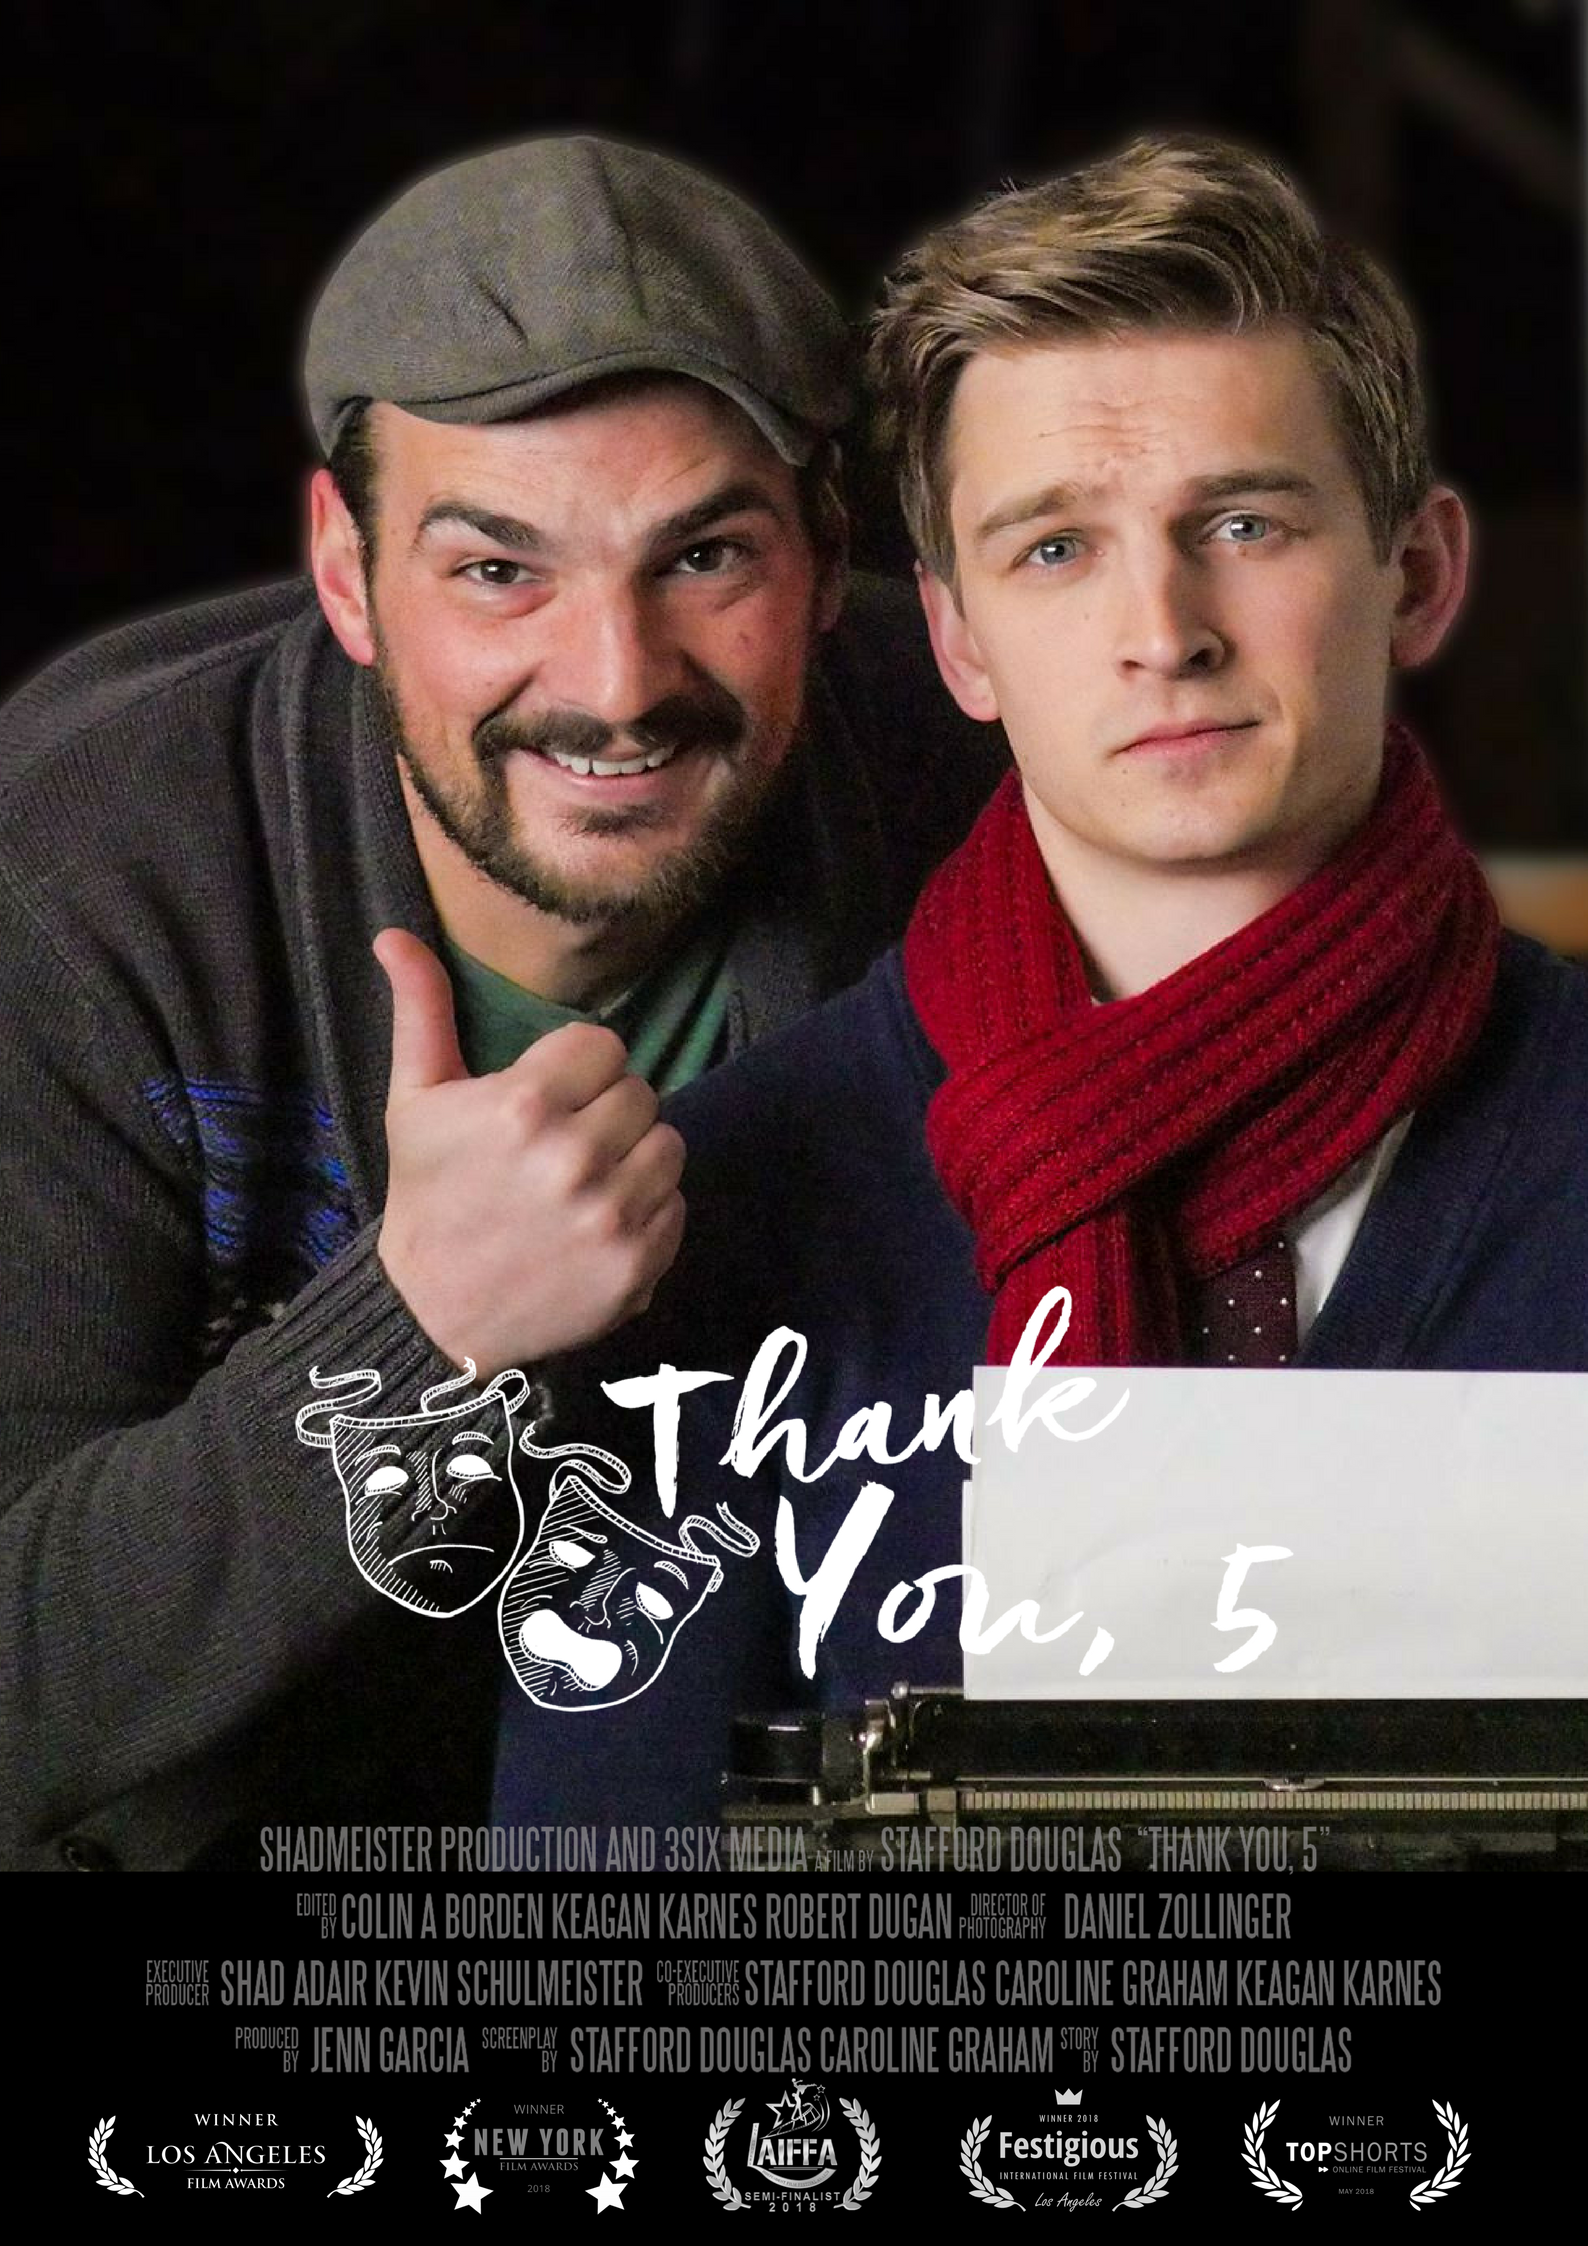 Thank You 5 - Season 1